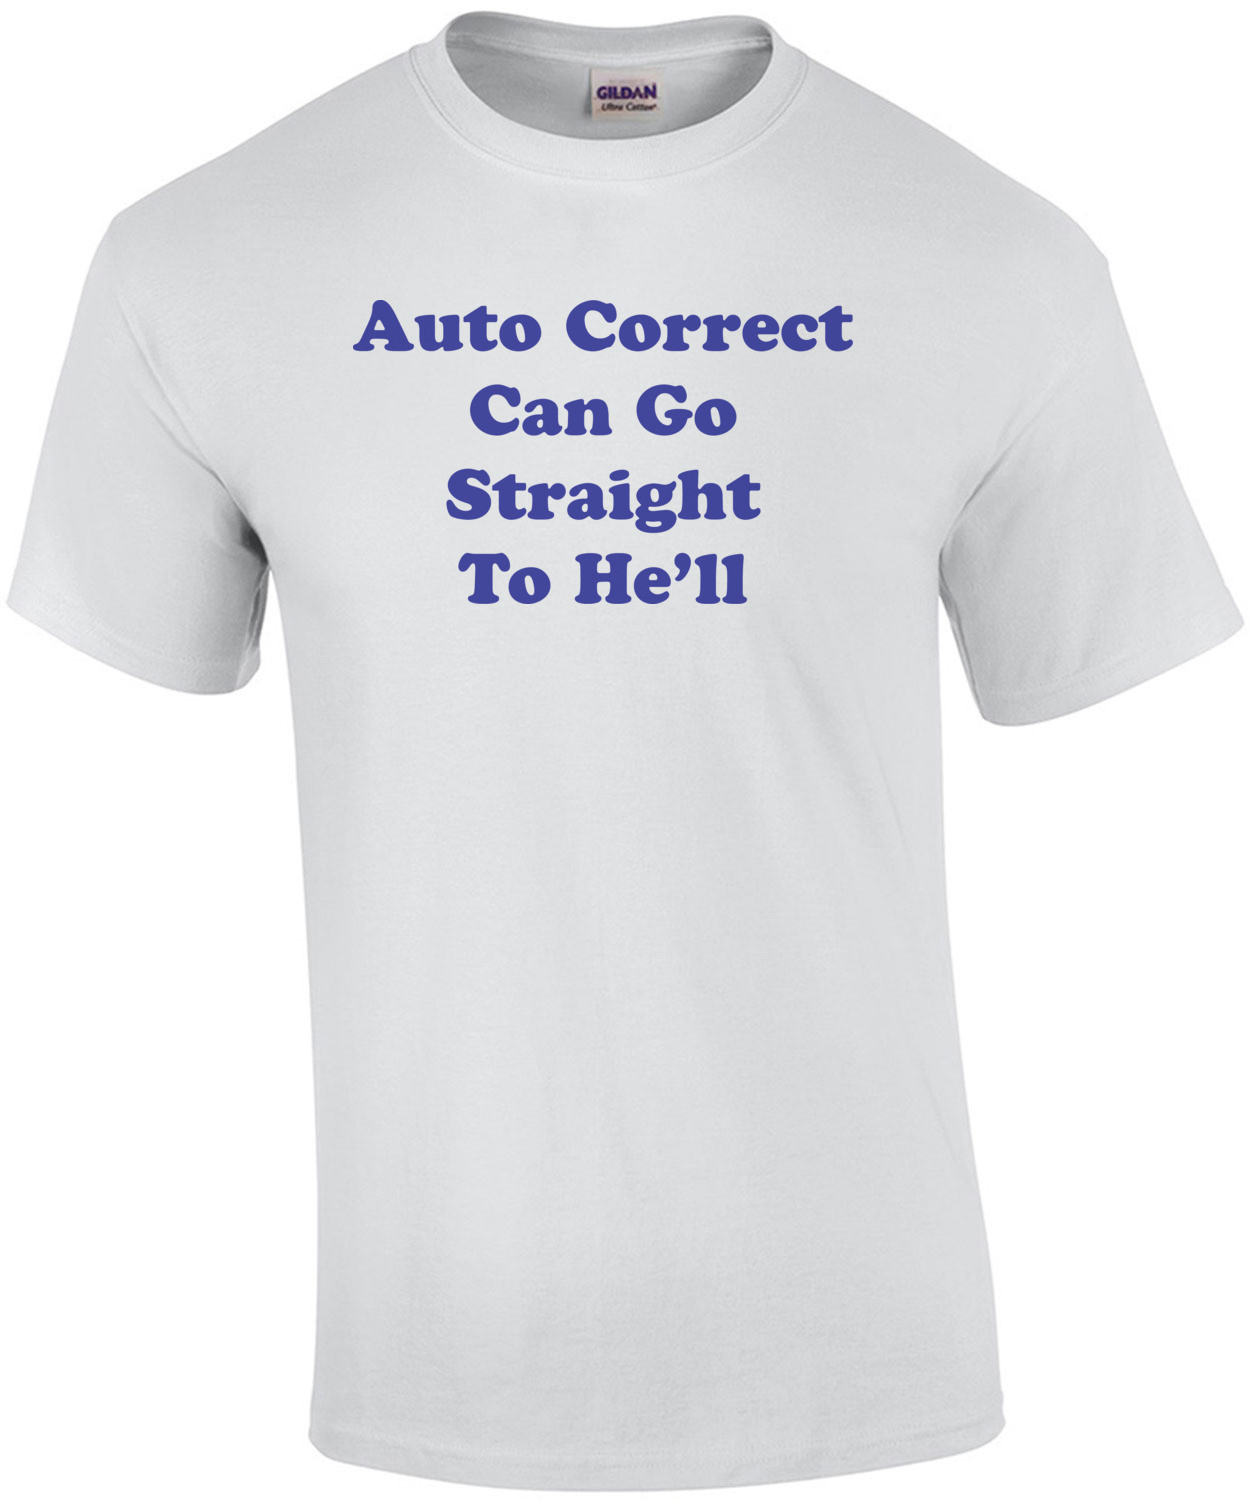 Auto Correct Can Go Straight To He'll T-Shirt